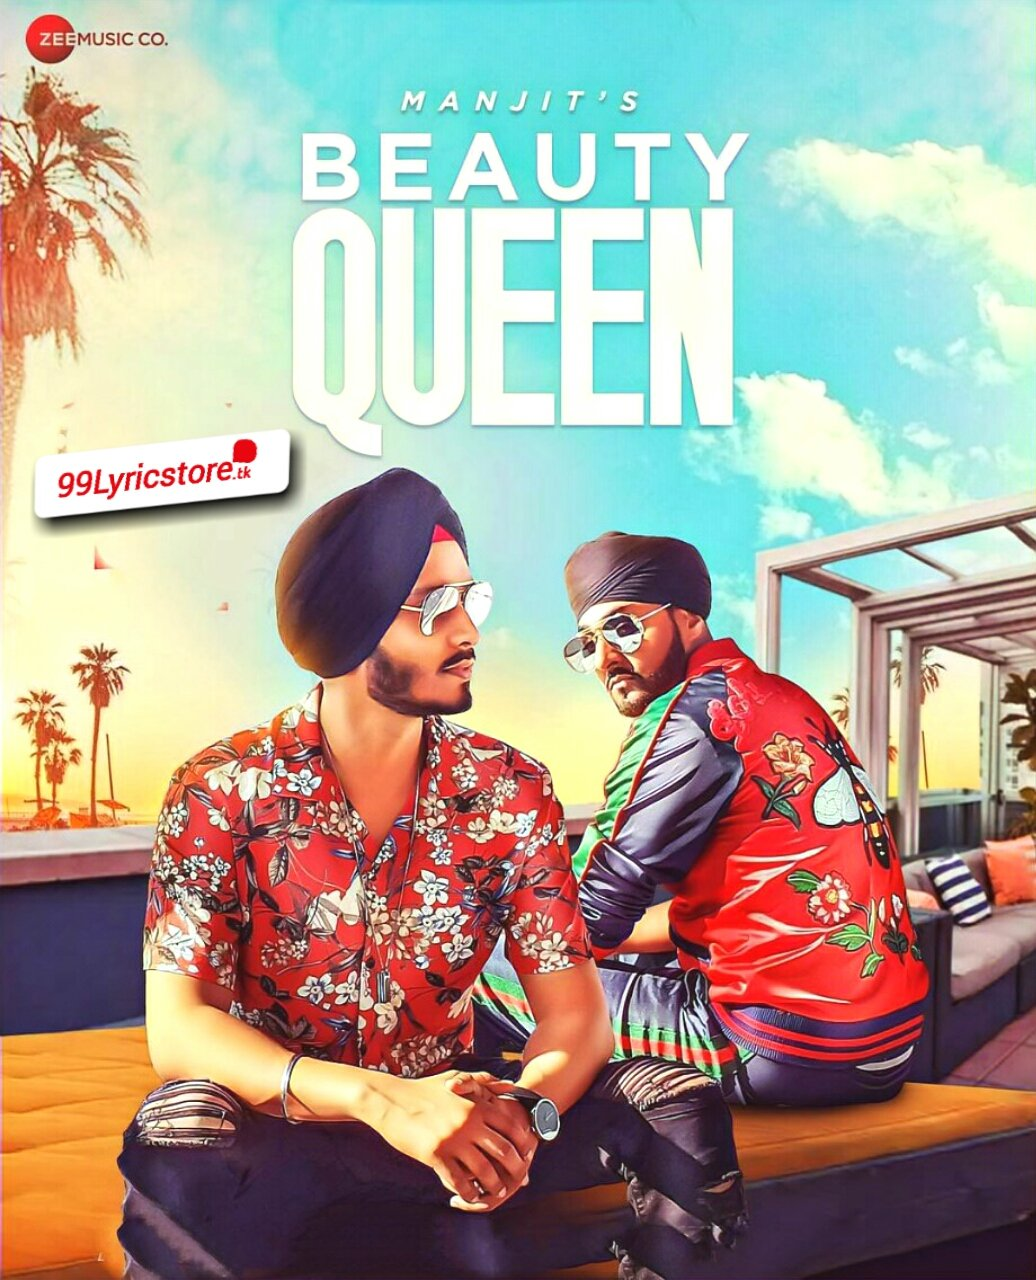 Beauty Queen Lyrics Manj Musik and Manjit Singh